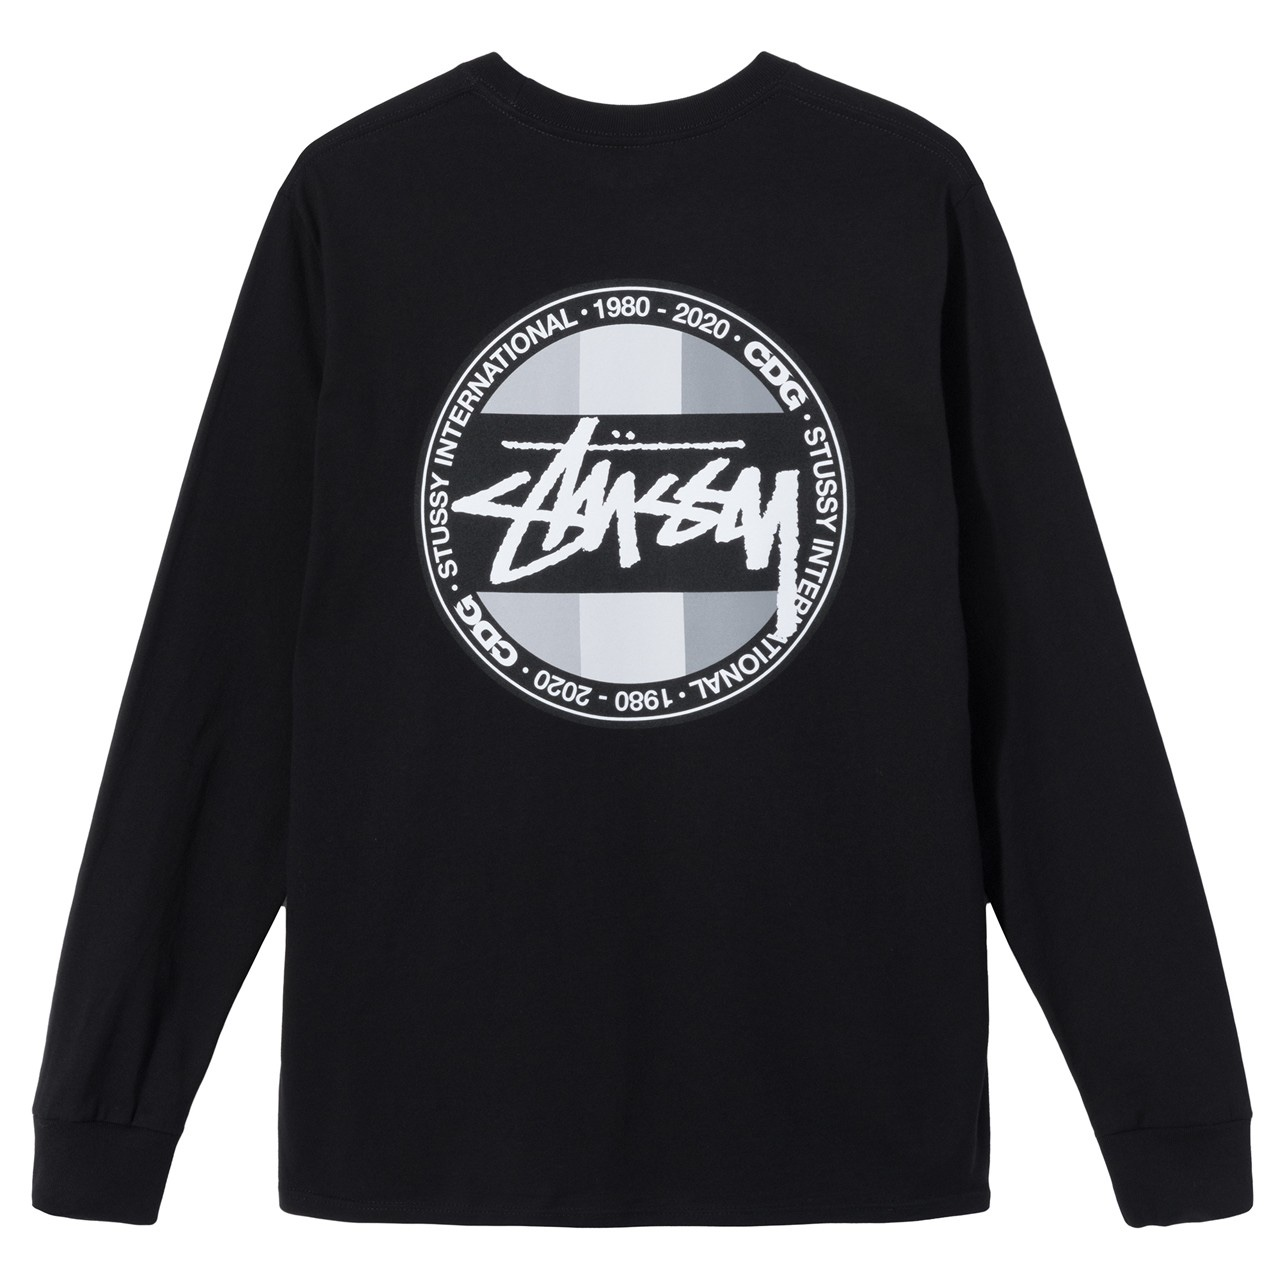 Stussy x CDG long sleeve